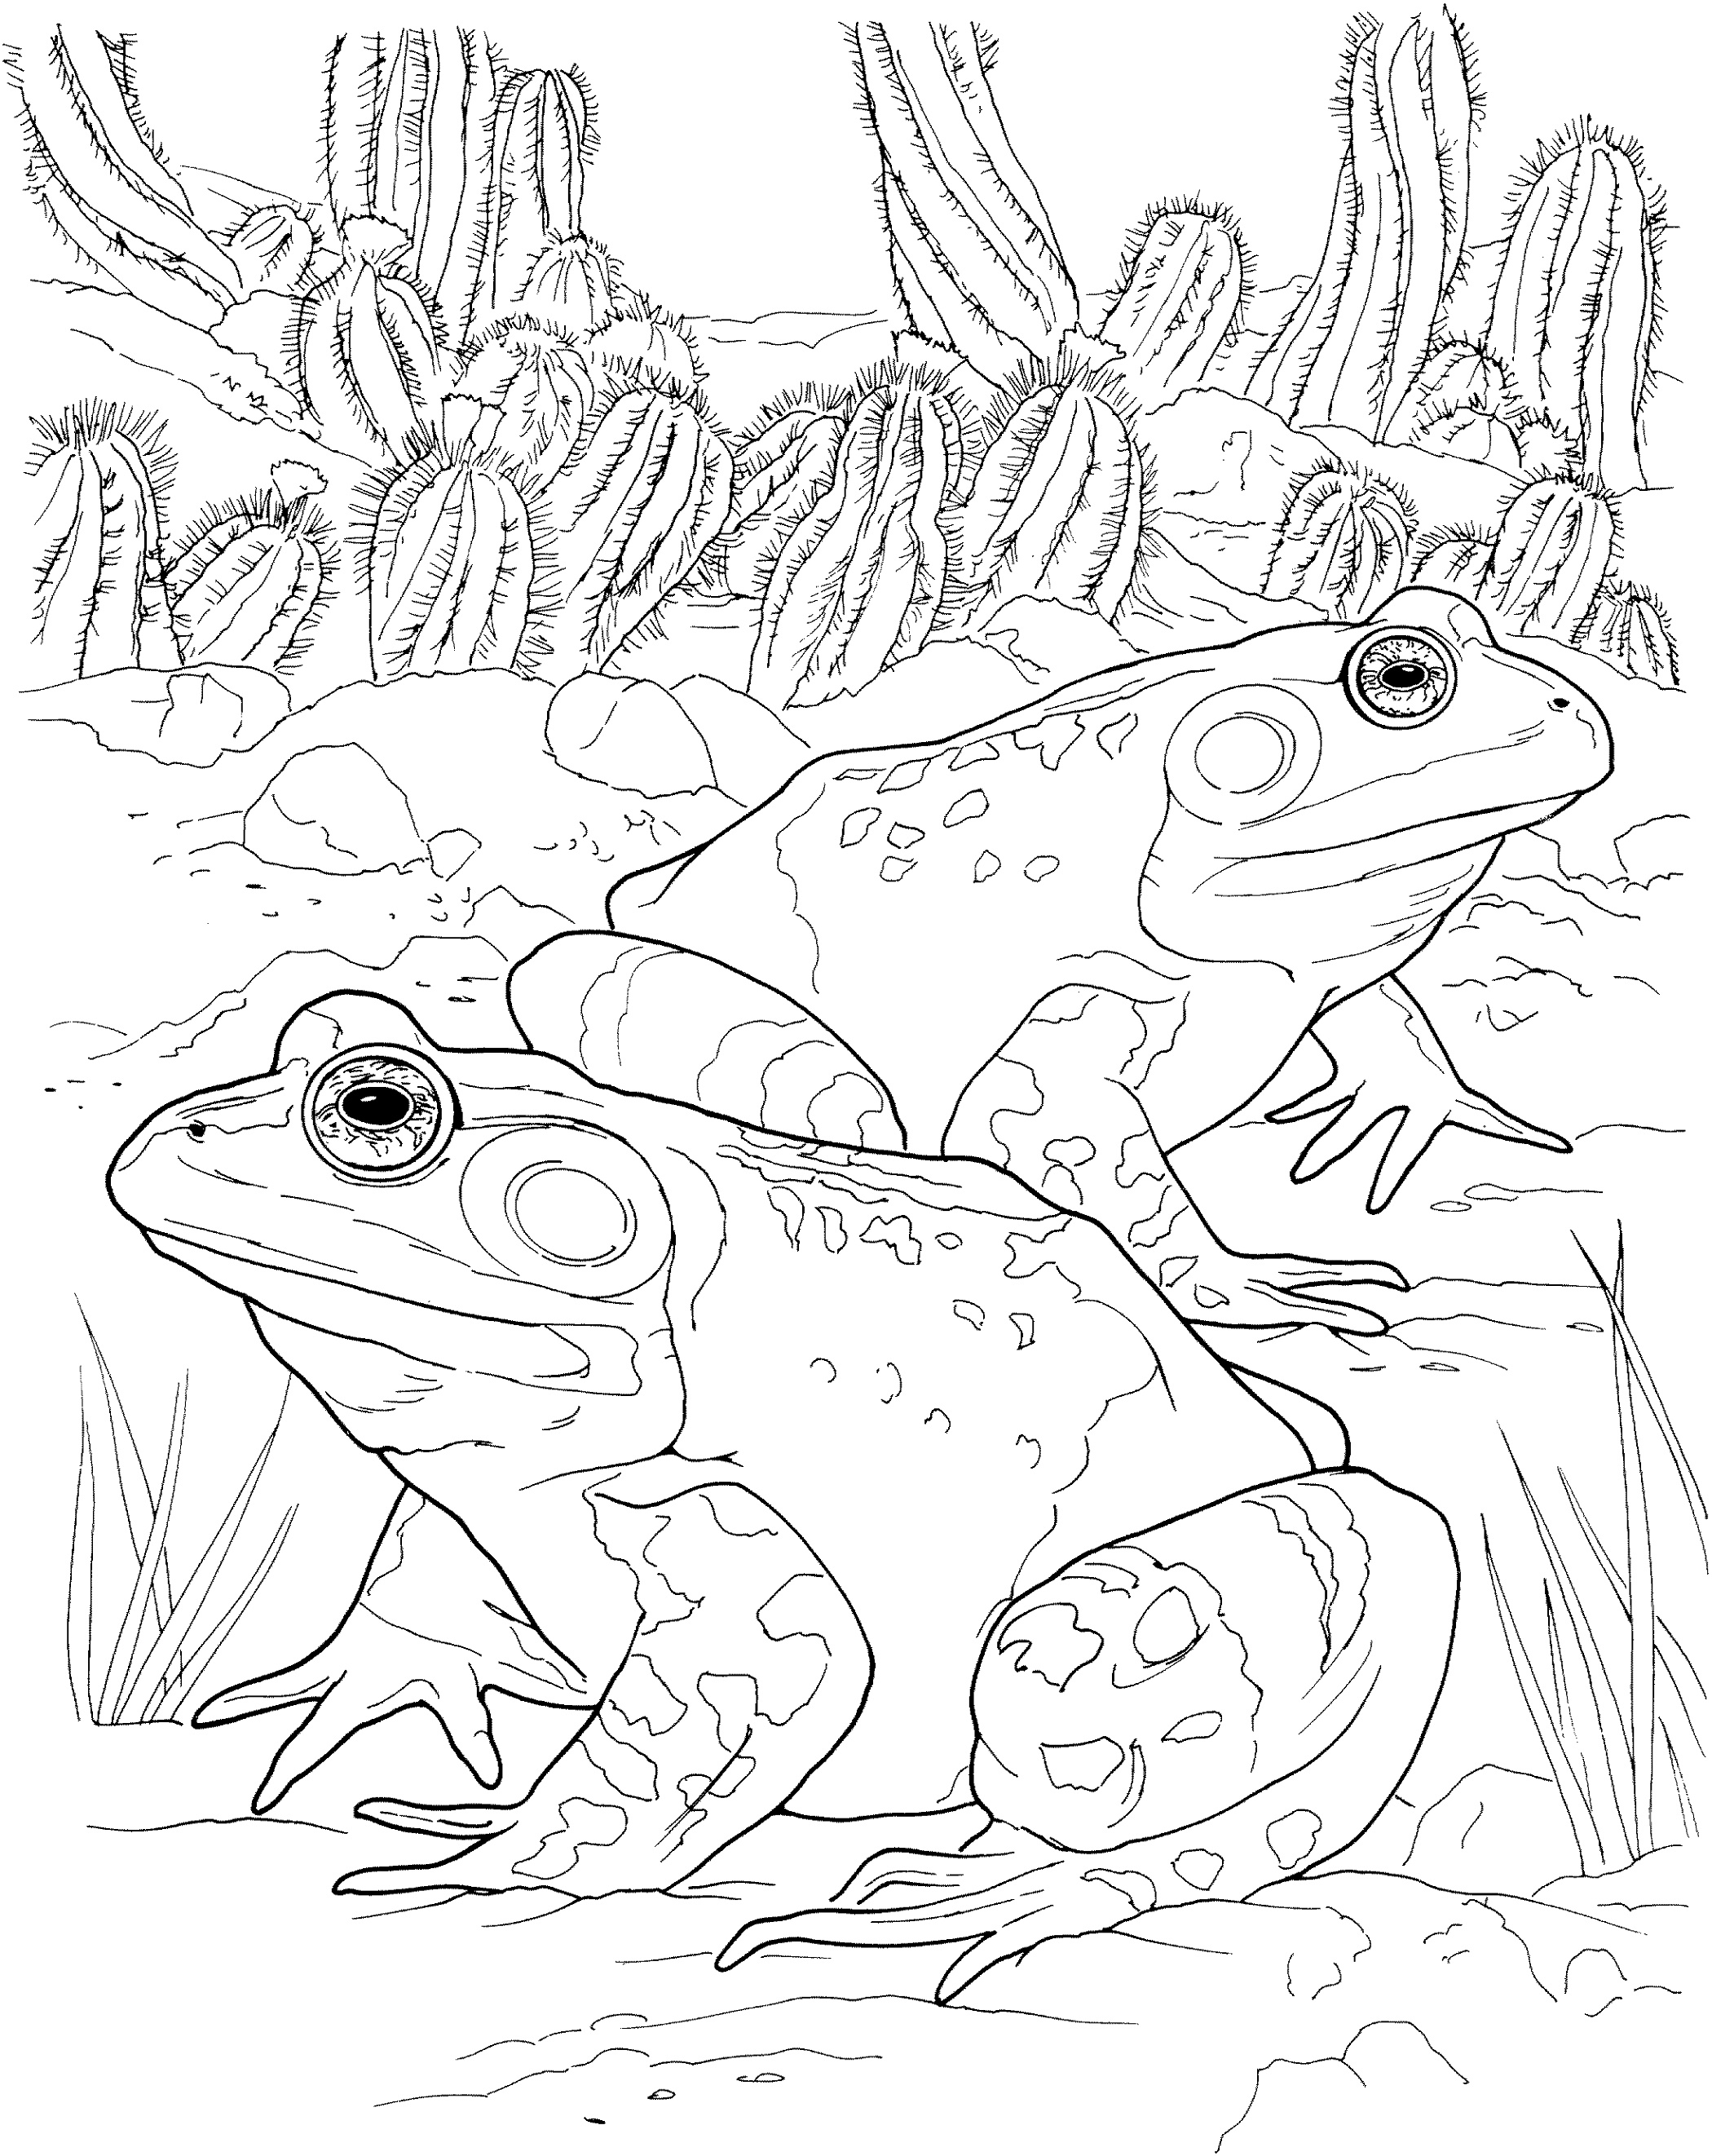 Frog Coloring Pages For Adults